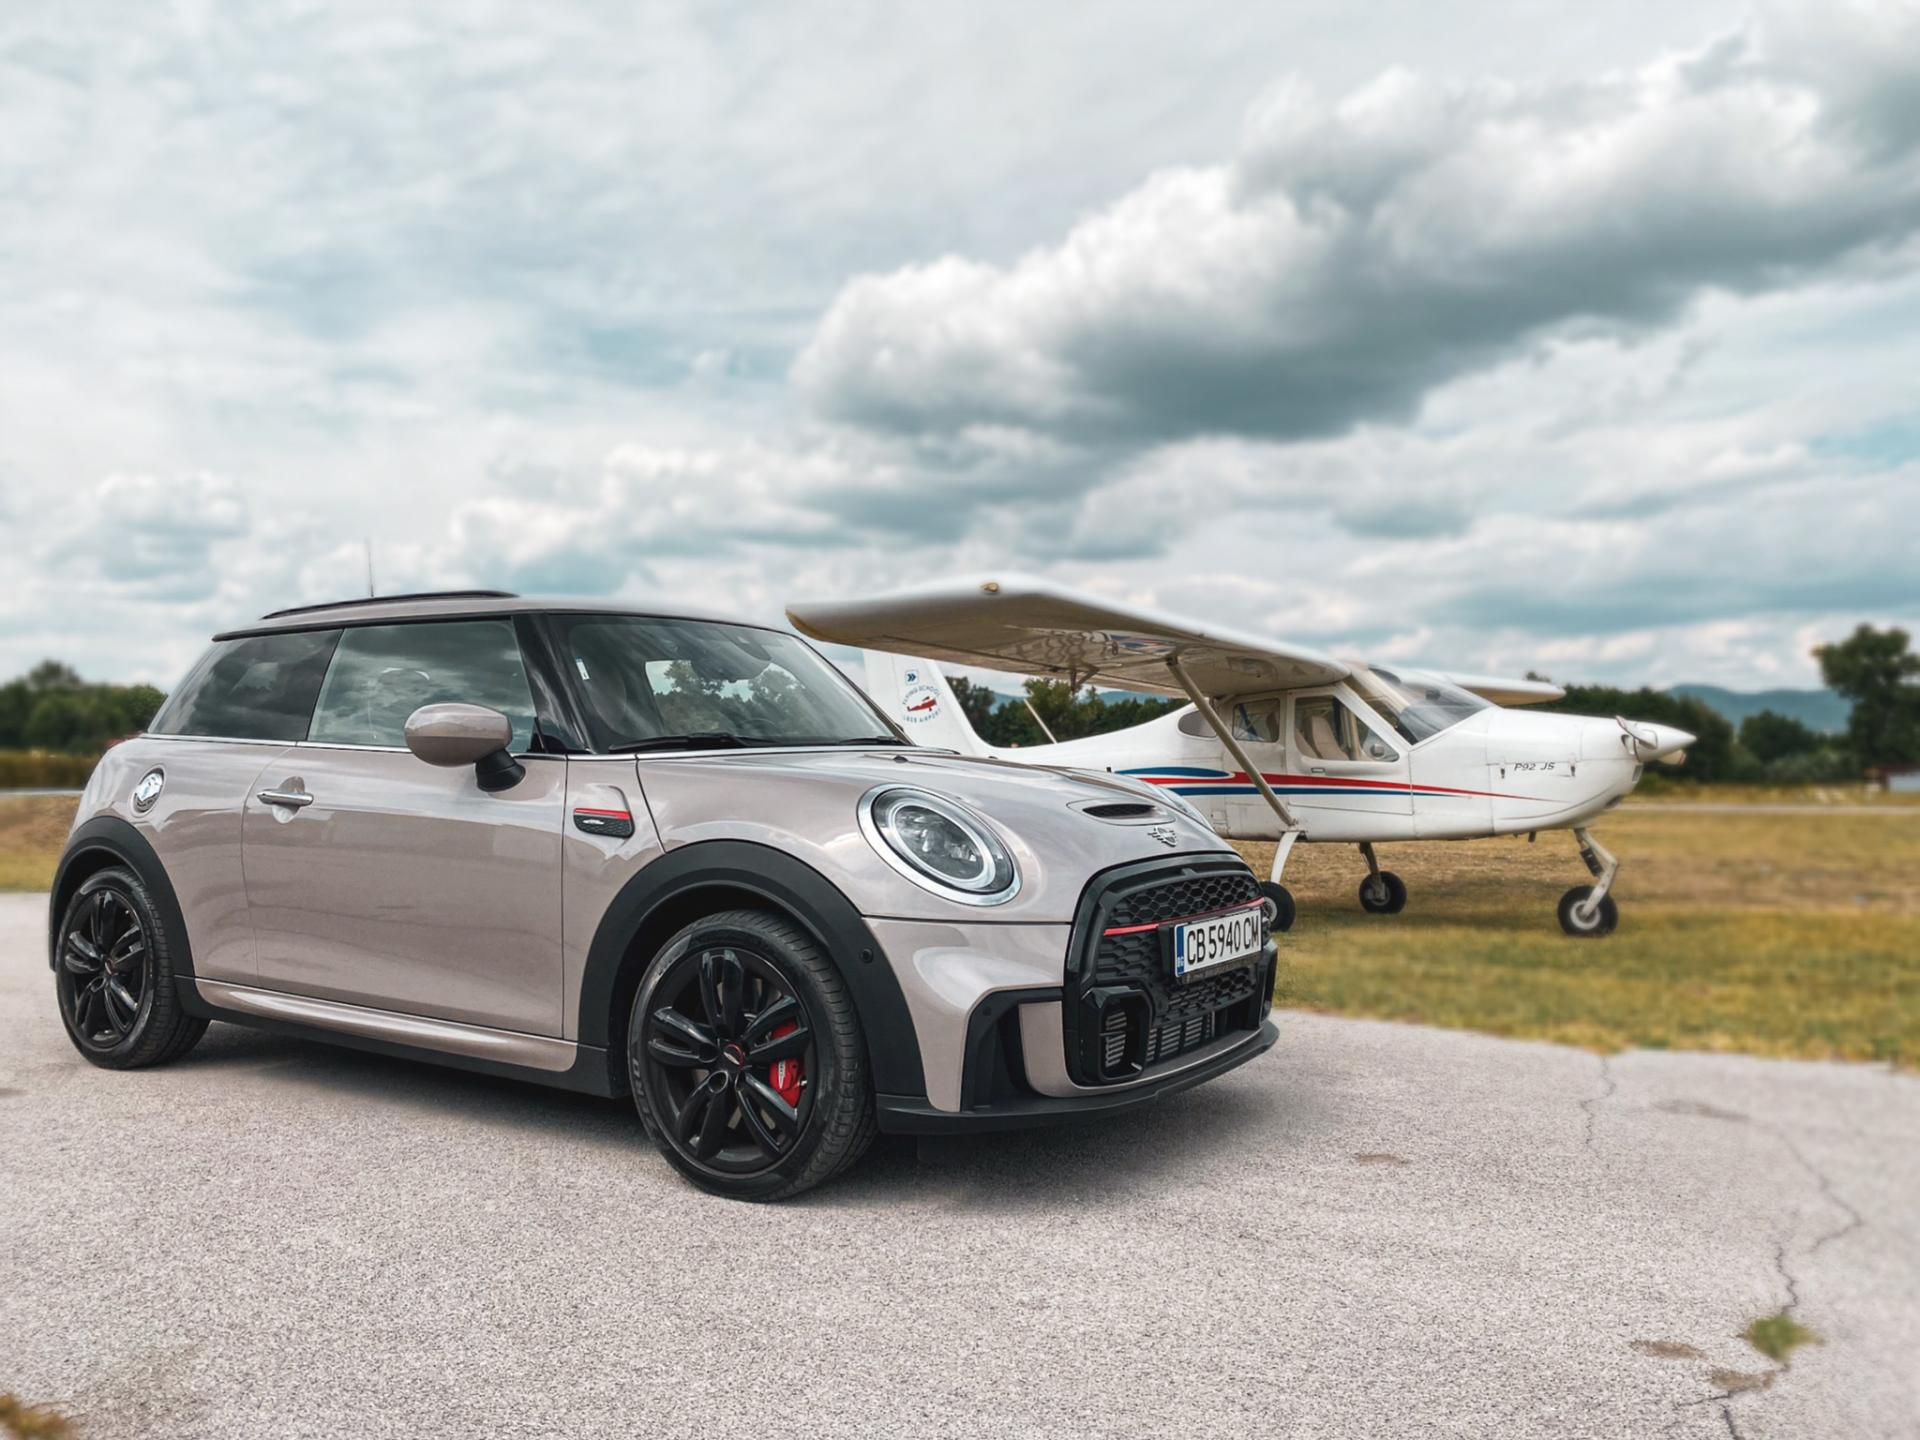 MINI JCW LCI and a small plane. at the back